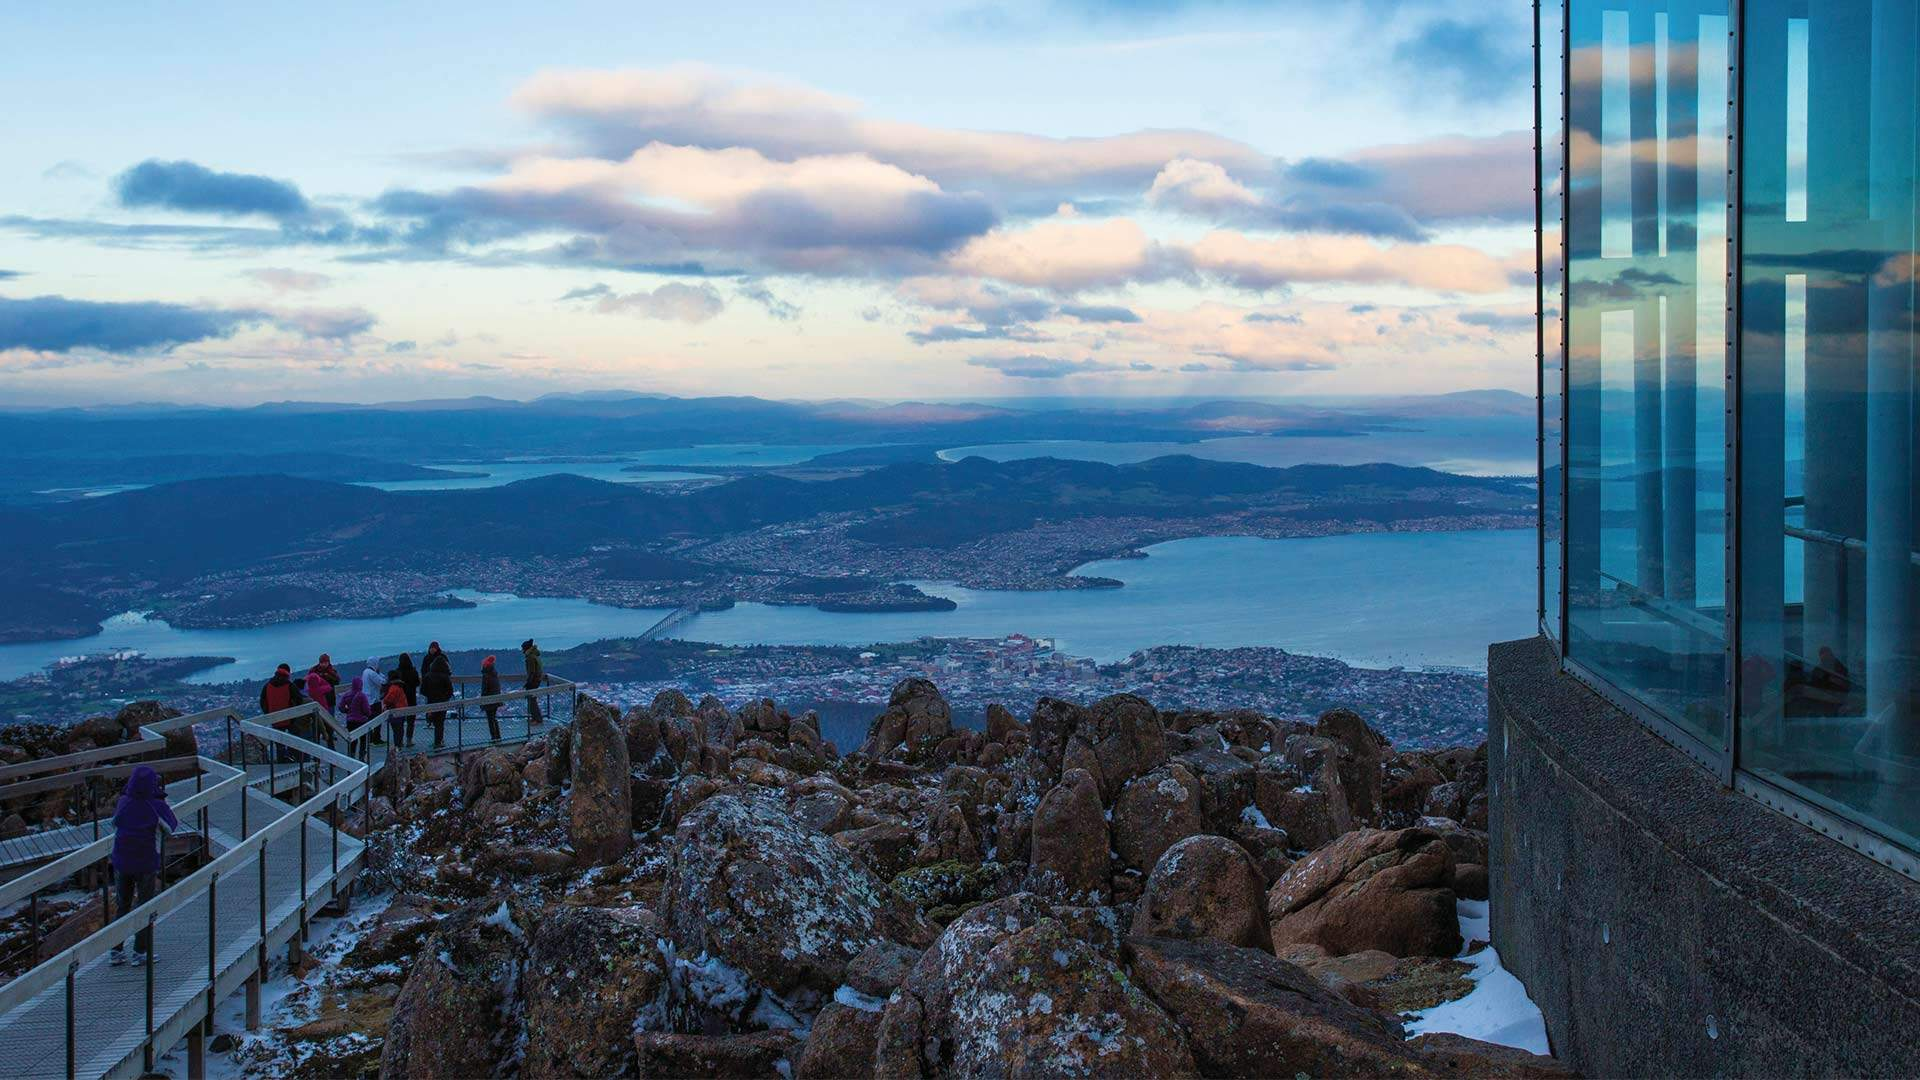 Air New Zealand Is Now Offering a Non-Stop Service to Tasmania